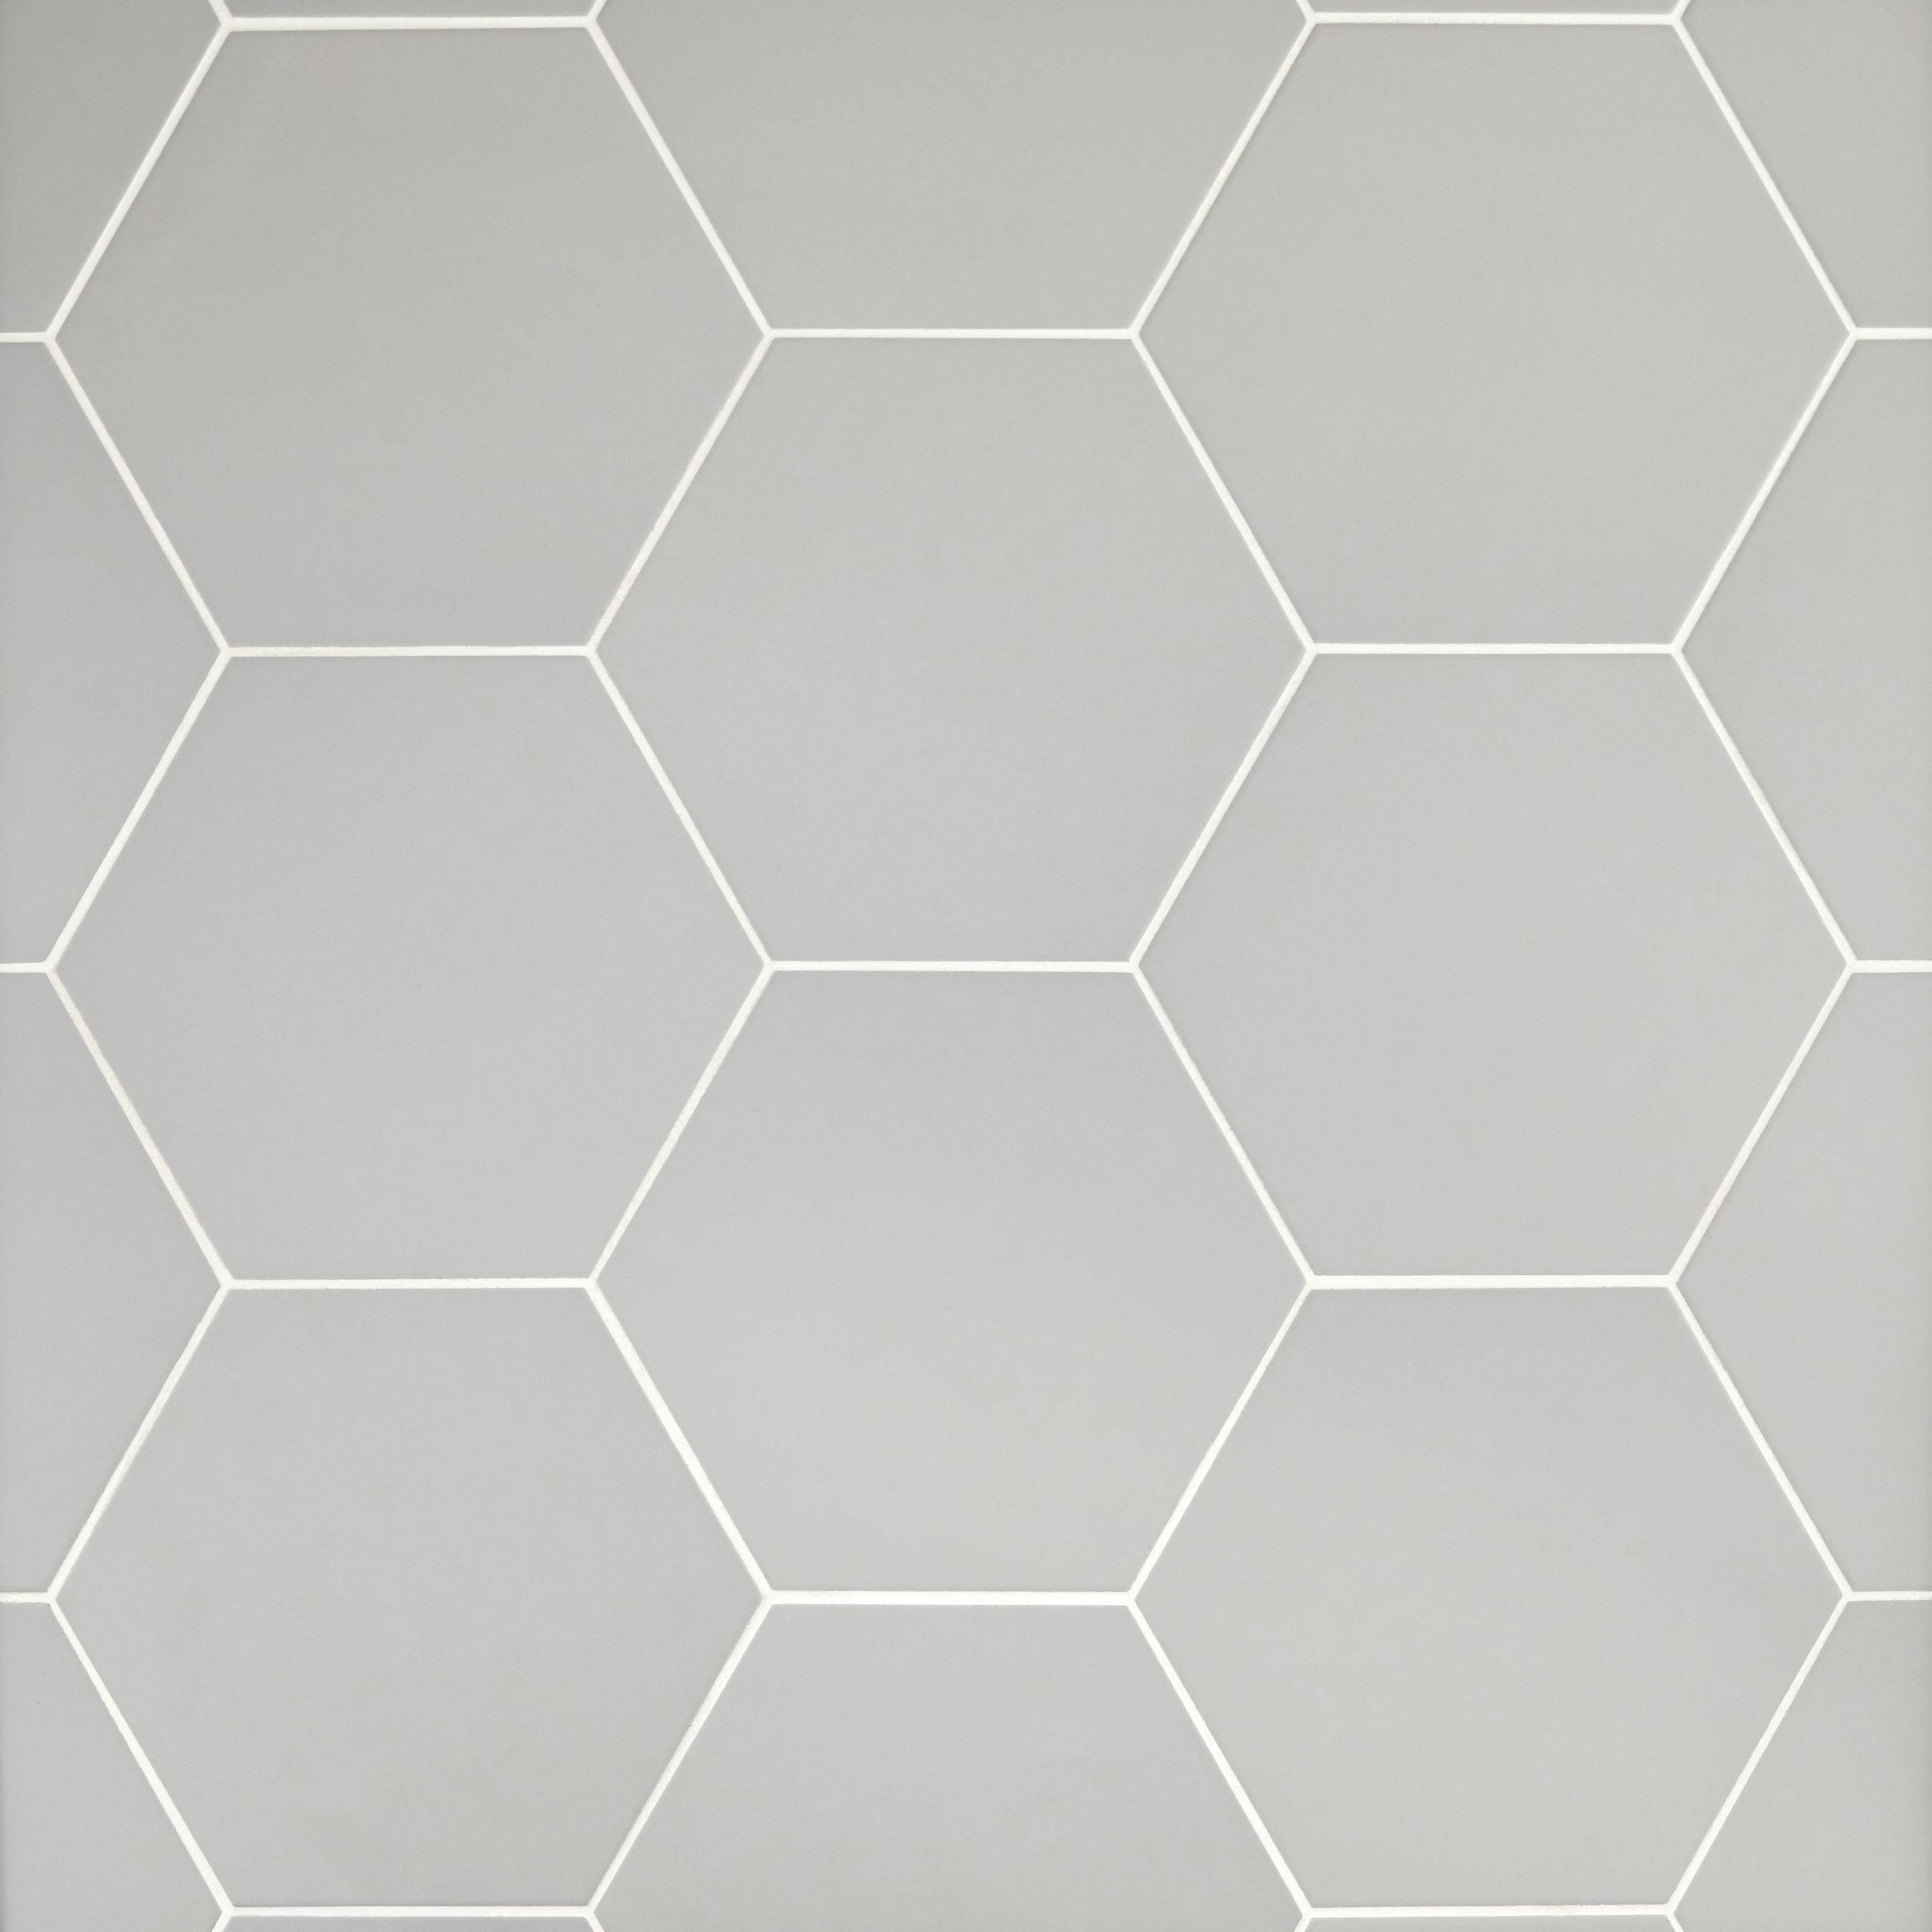 Opal Gray Hexagon Porcelain Tile In 2020 Bathroom Flooring Hexagon Tile Floor Tile Floor